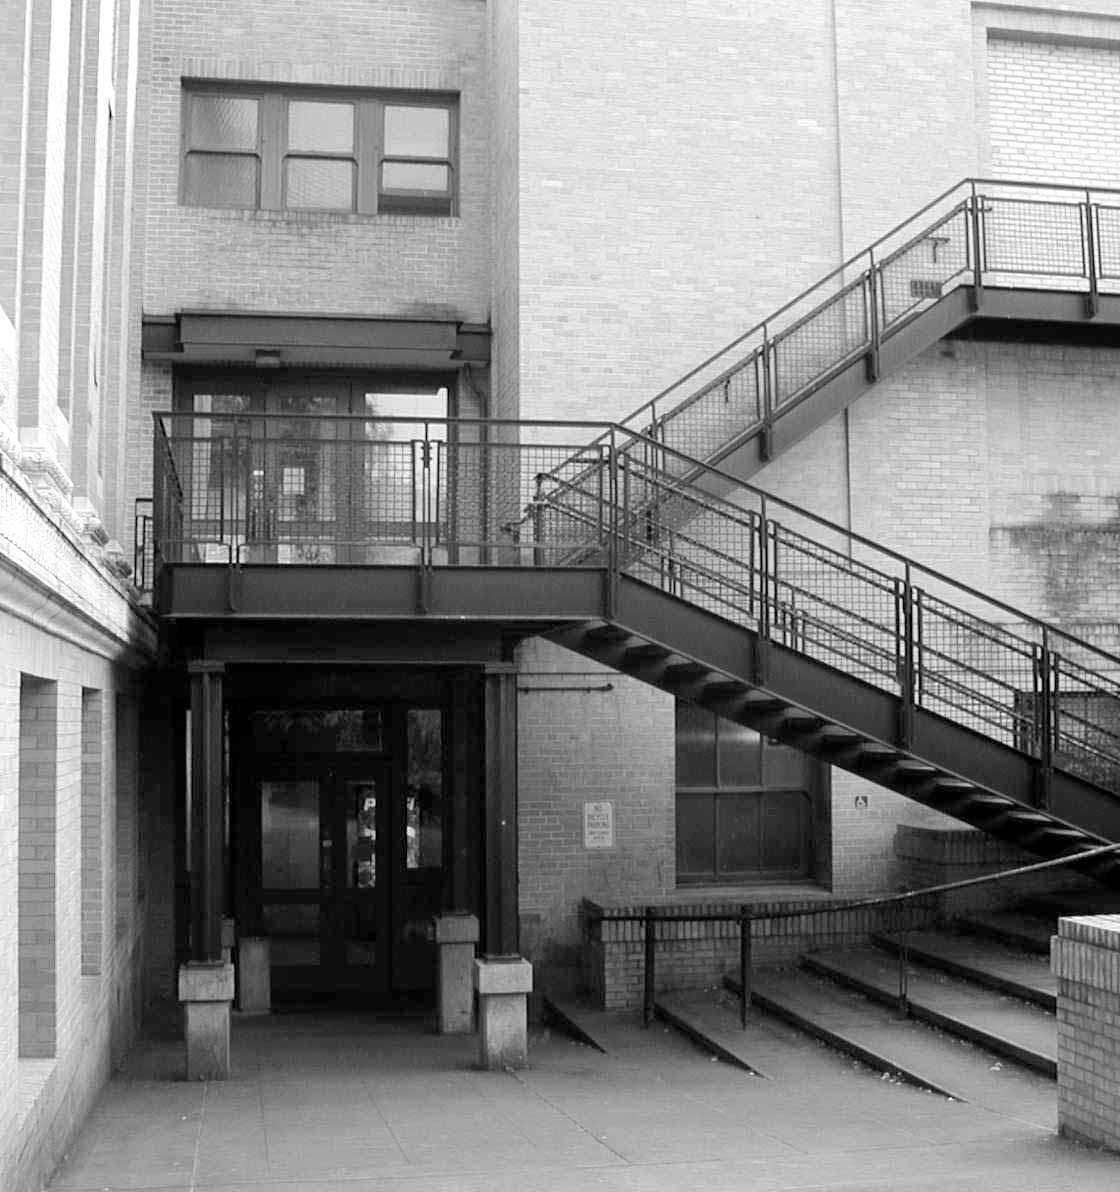 Entrance #5 to ground floor at rear of building